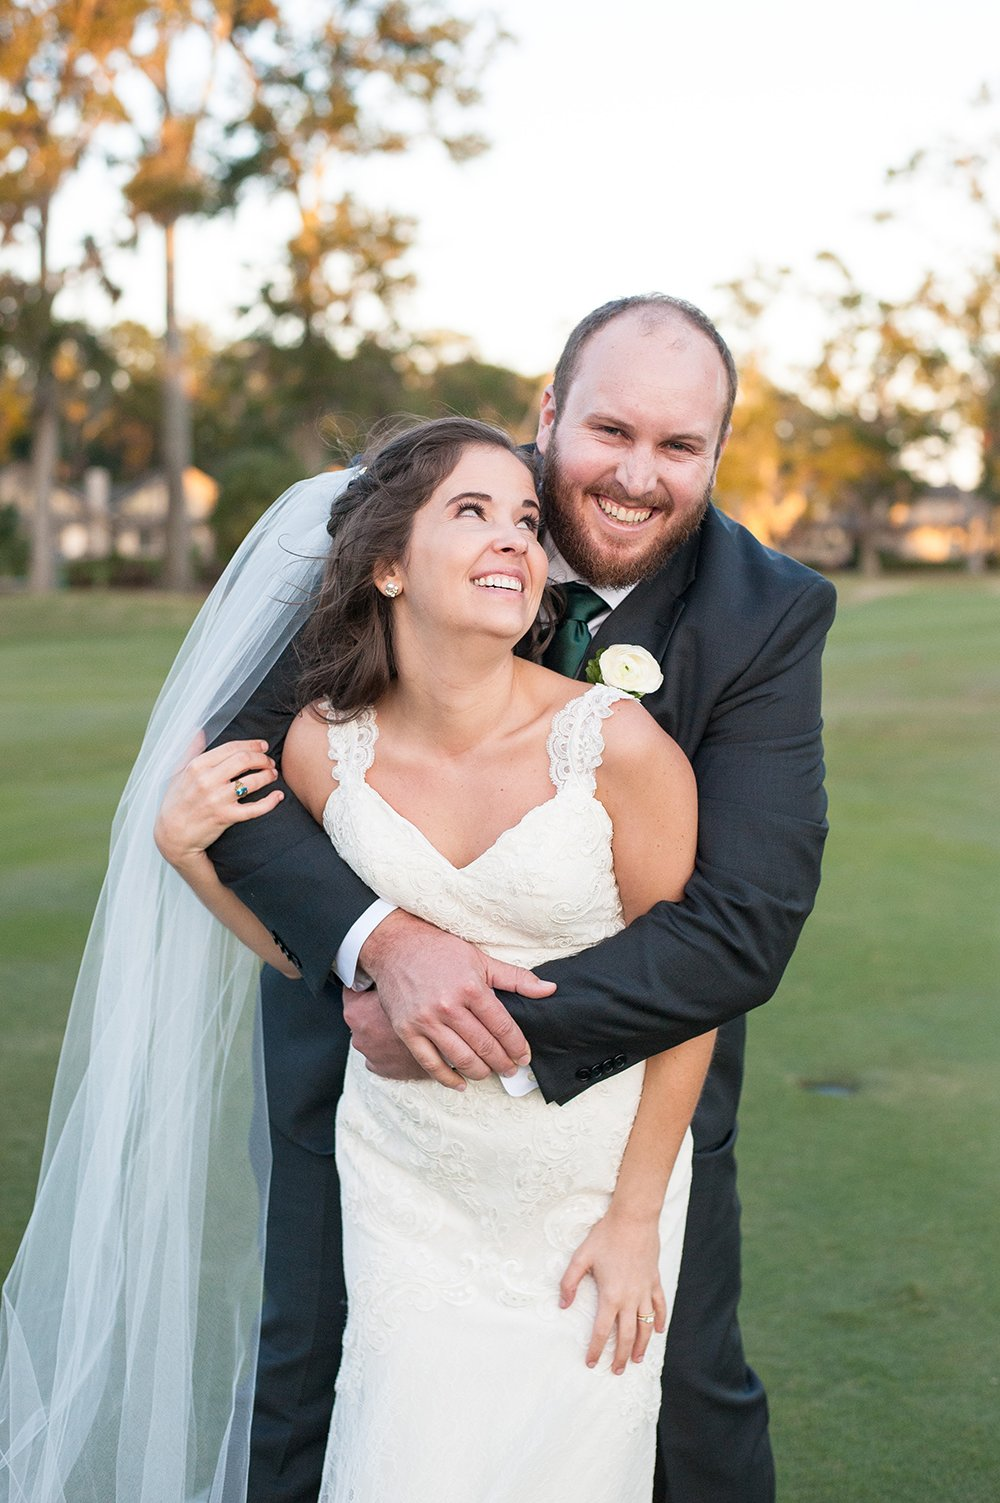 Bride and Groom portrait at Dataw Island Club Wedding near Beaufort, SC